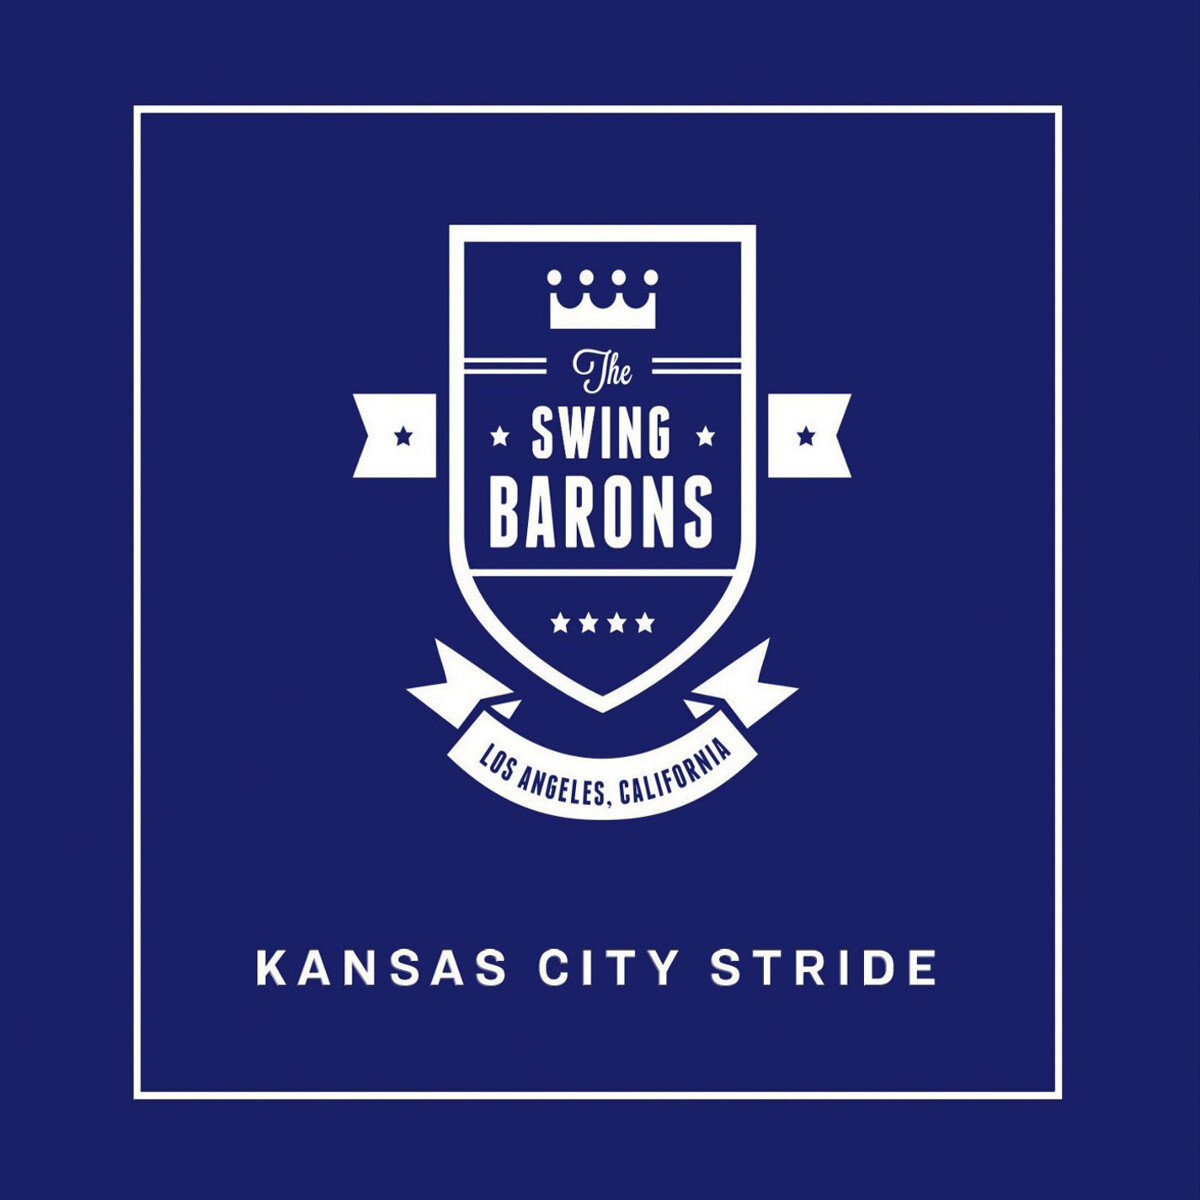 Swing Barons Kansas City Stride